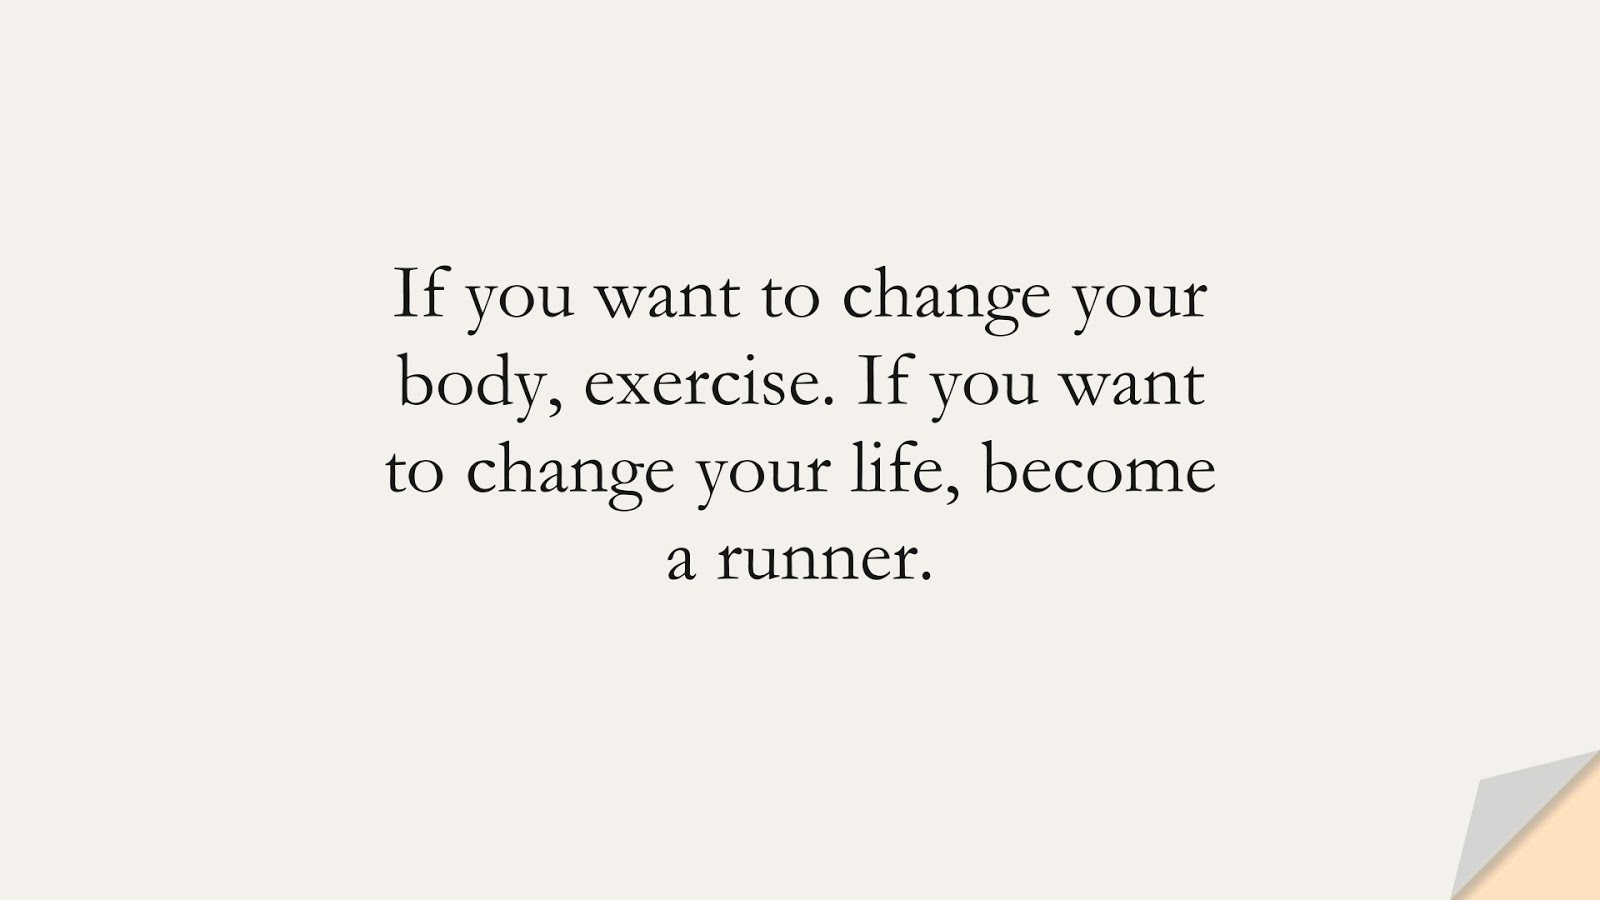 If you want to change your body, exercise. If you want to change your life, become a runner.FALSE